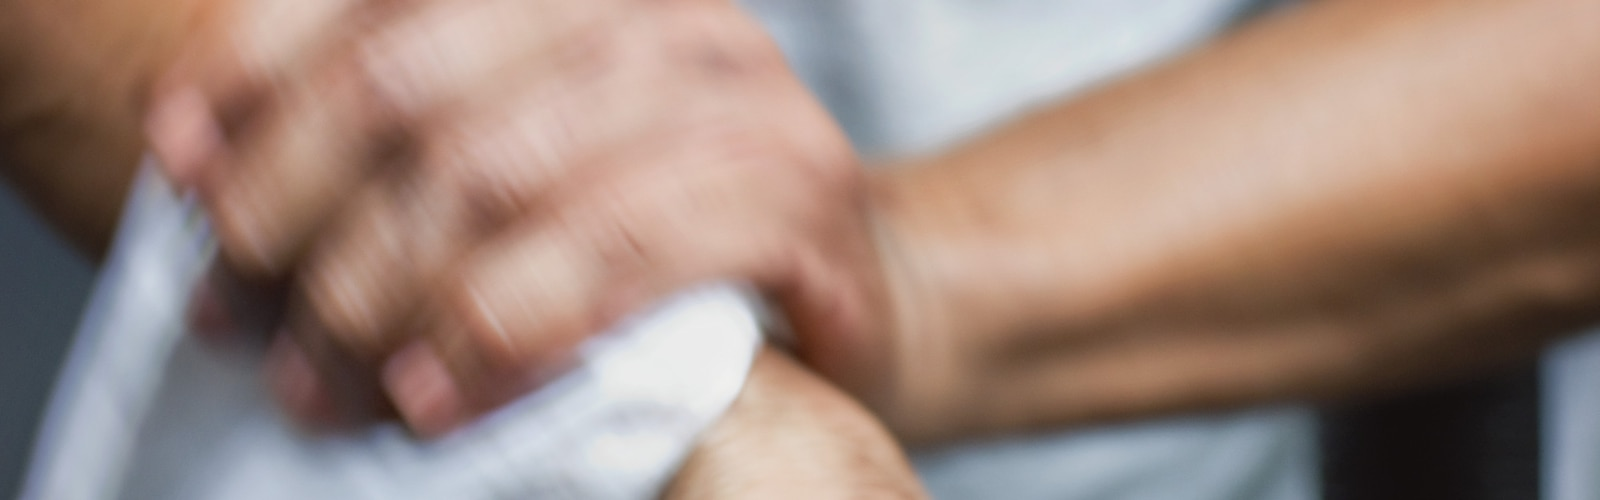 Ind-in-Use-hand-wiping_original.png